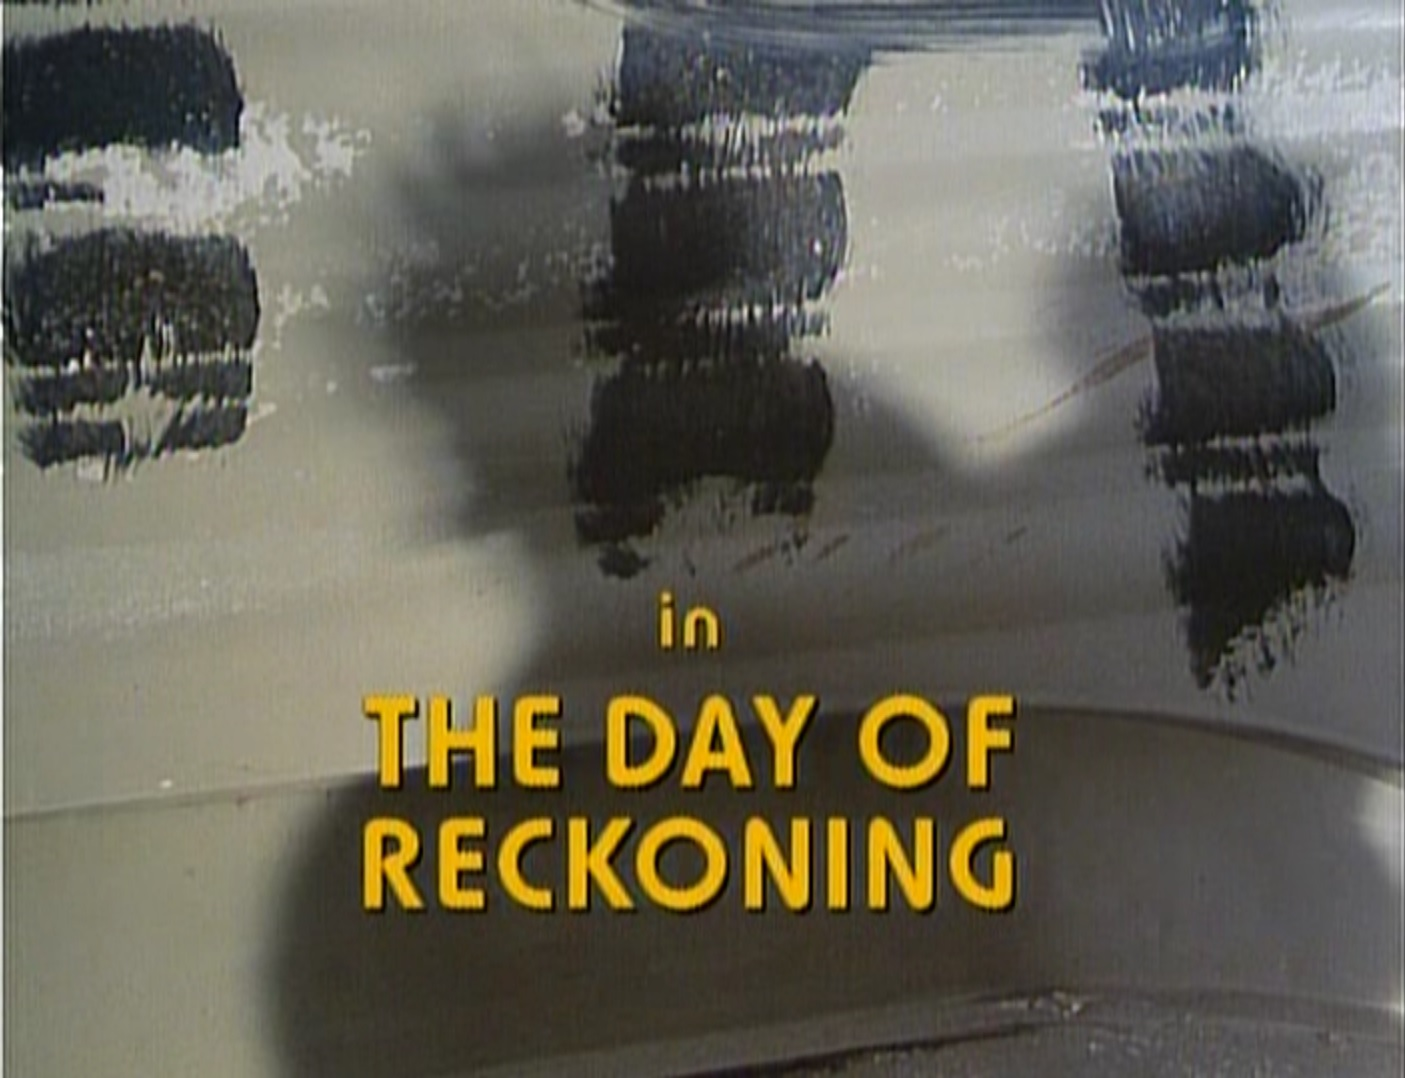 The day of reckoning 1990 silver emulsion film reviews - Philippe campion ...